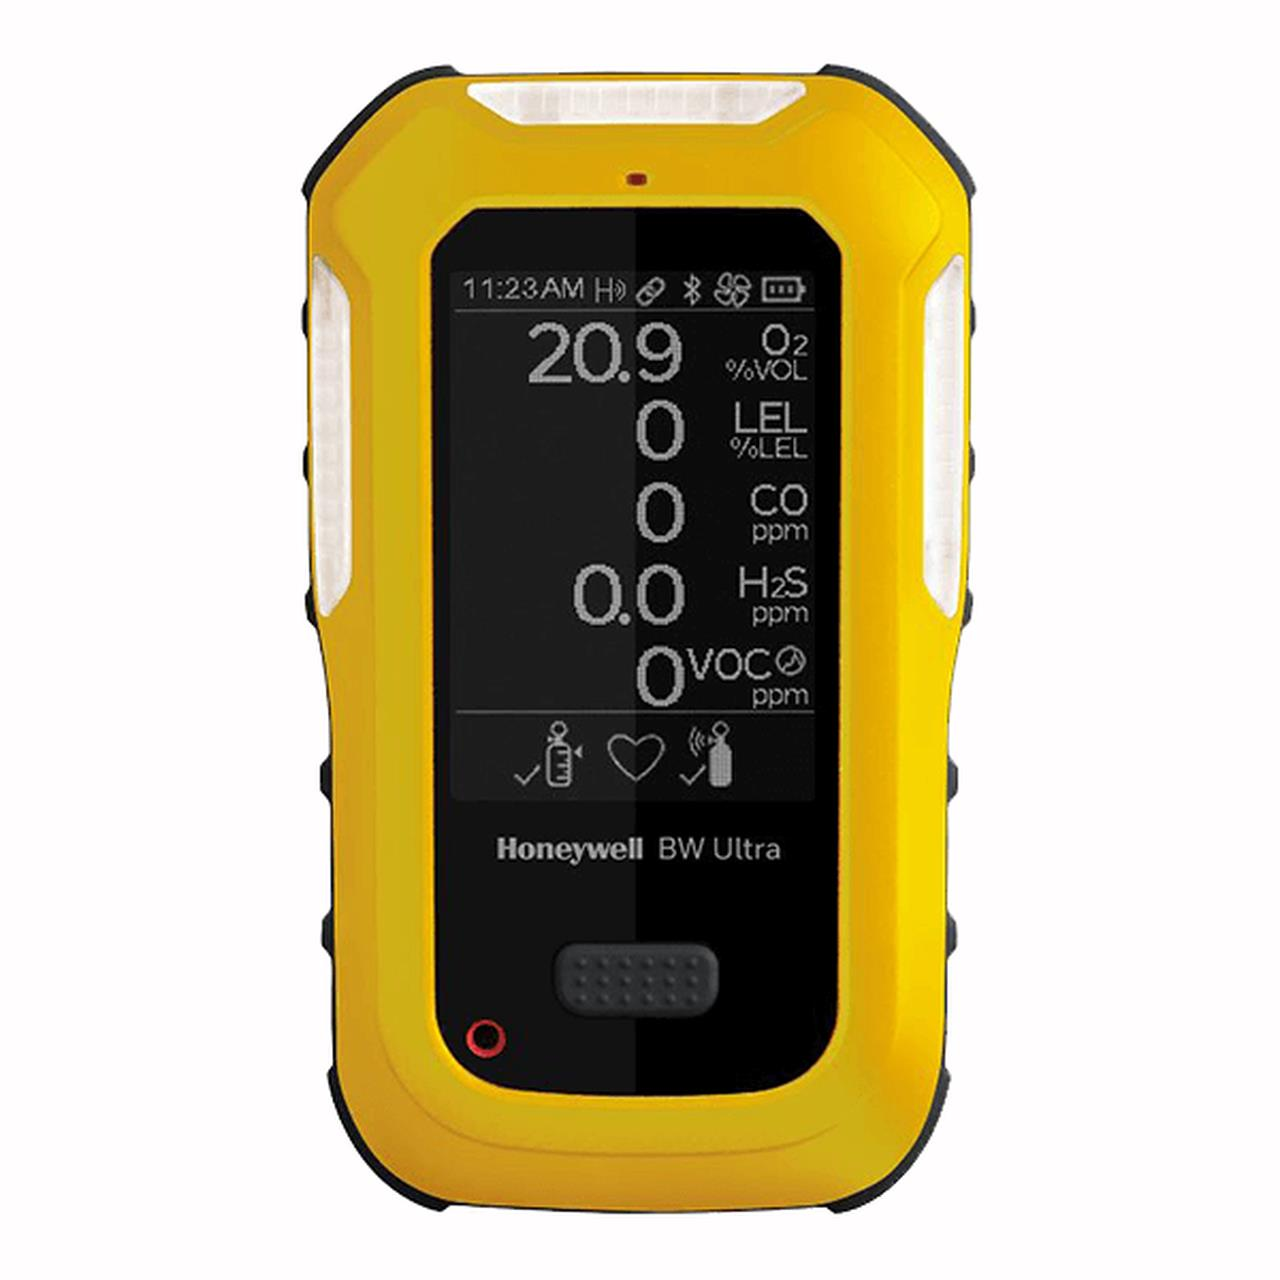 Honeywell BW Ultra 5 (CO2 IR LEL O2